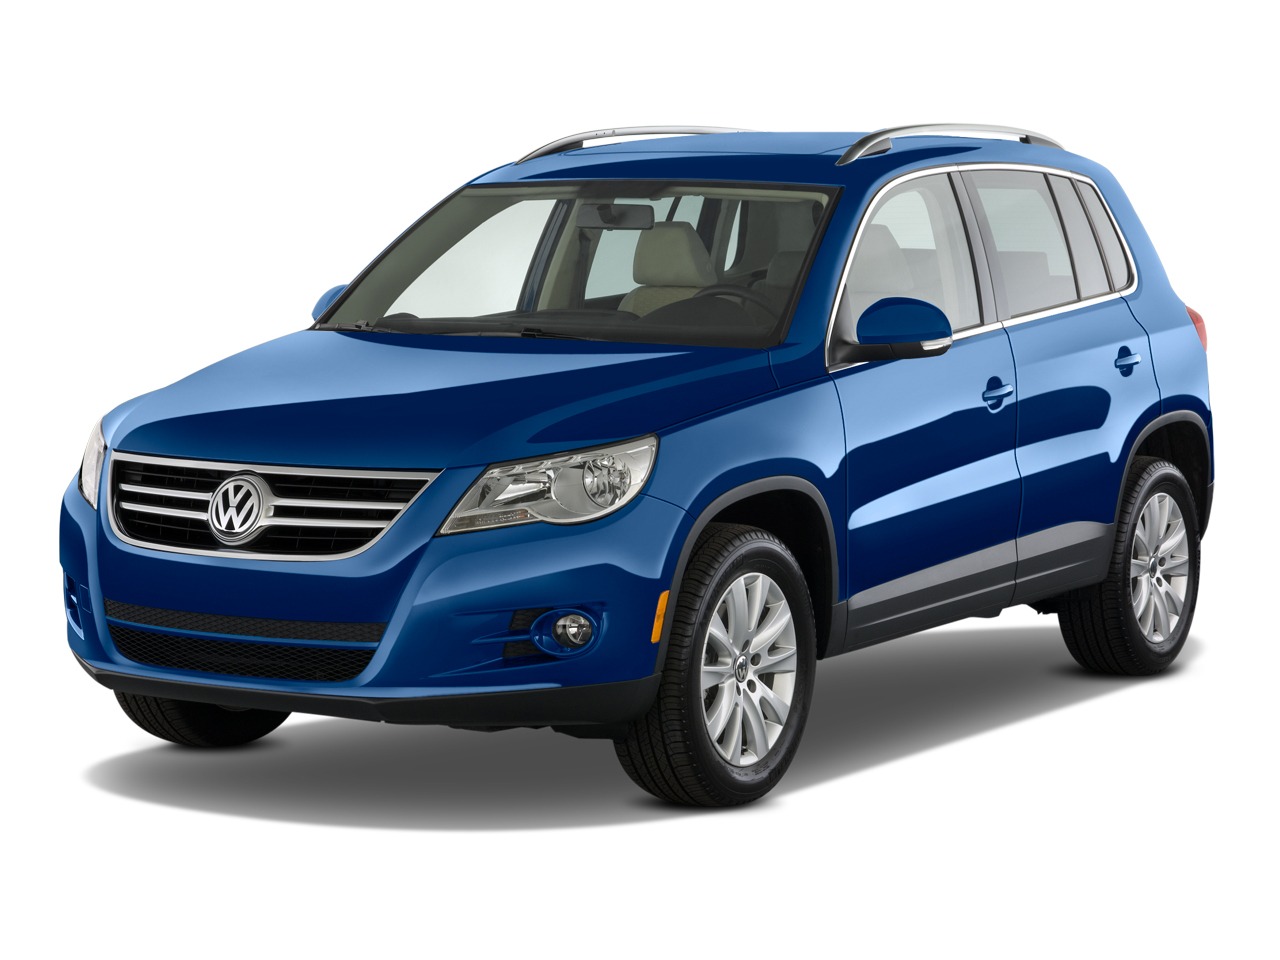 2011 volkswagen tiguan vw review ratings specs prices and photos the car connection. Black Bedroom Furniture Sets. Home Design Ideas